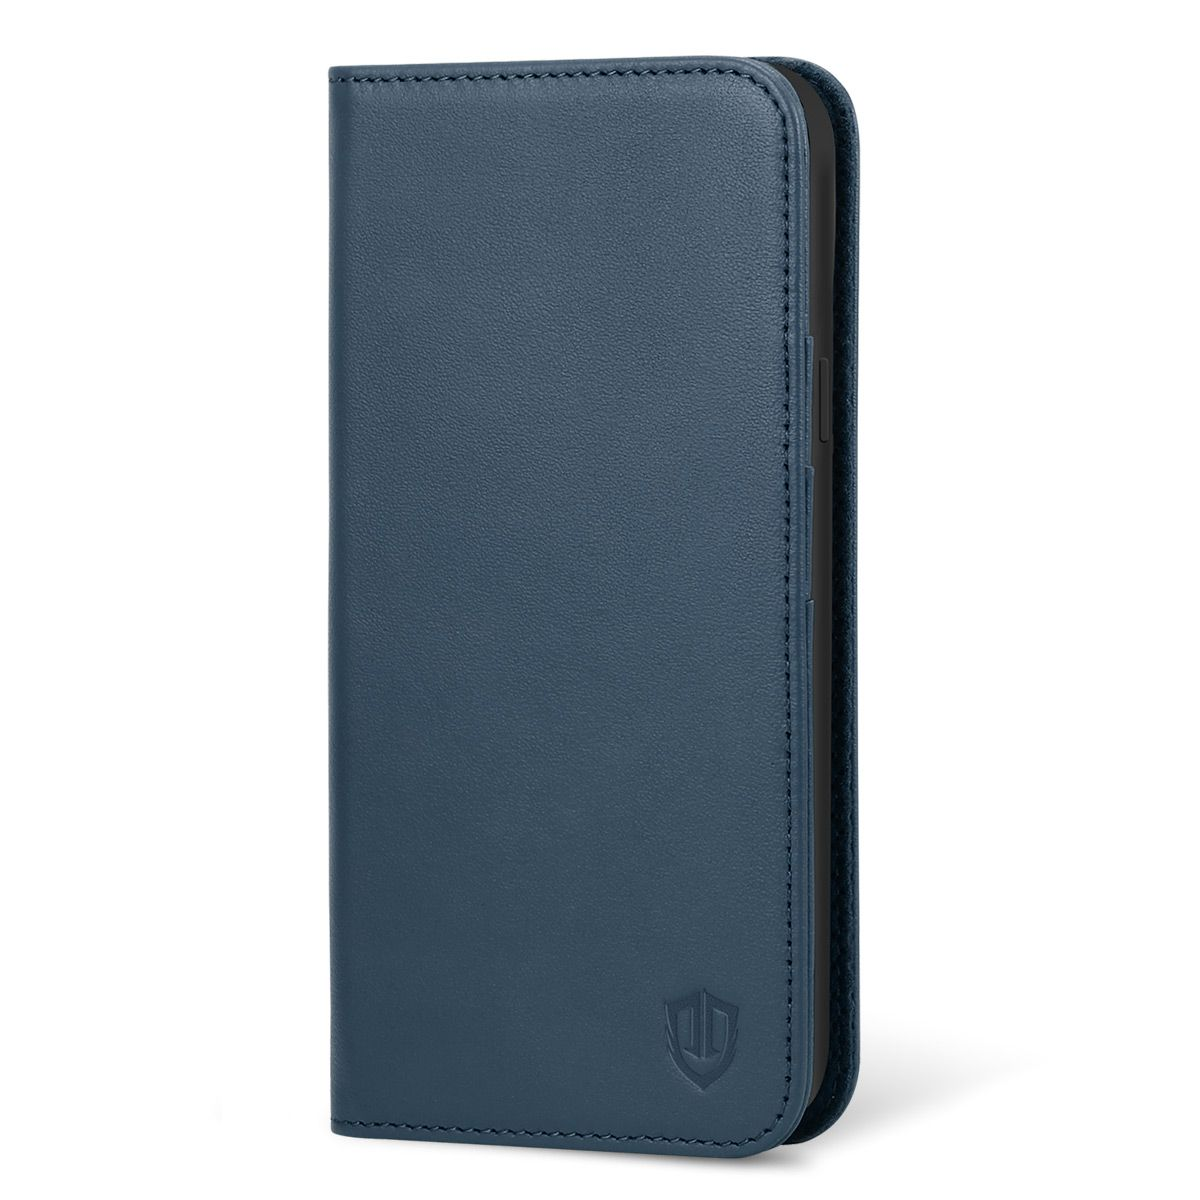 buy online 35e9c 0d010 SHIELDON Samsung Galaxy S9 Plus Genuine Leather Wallet Case with Kickstand